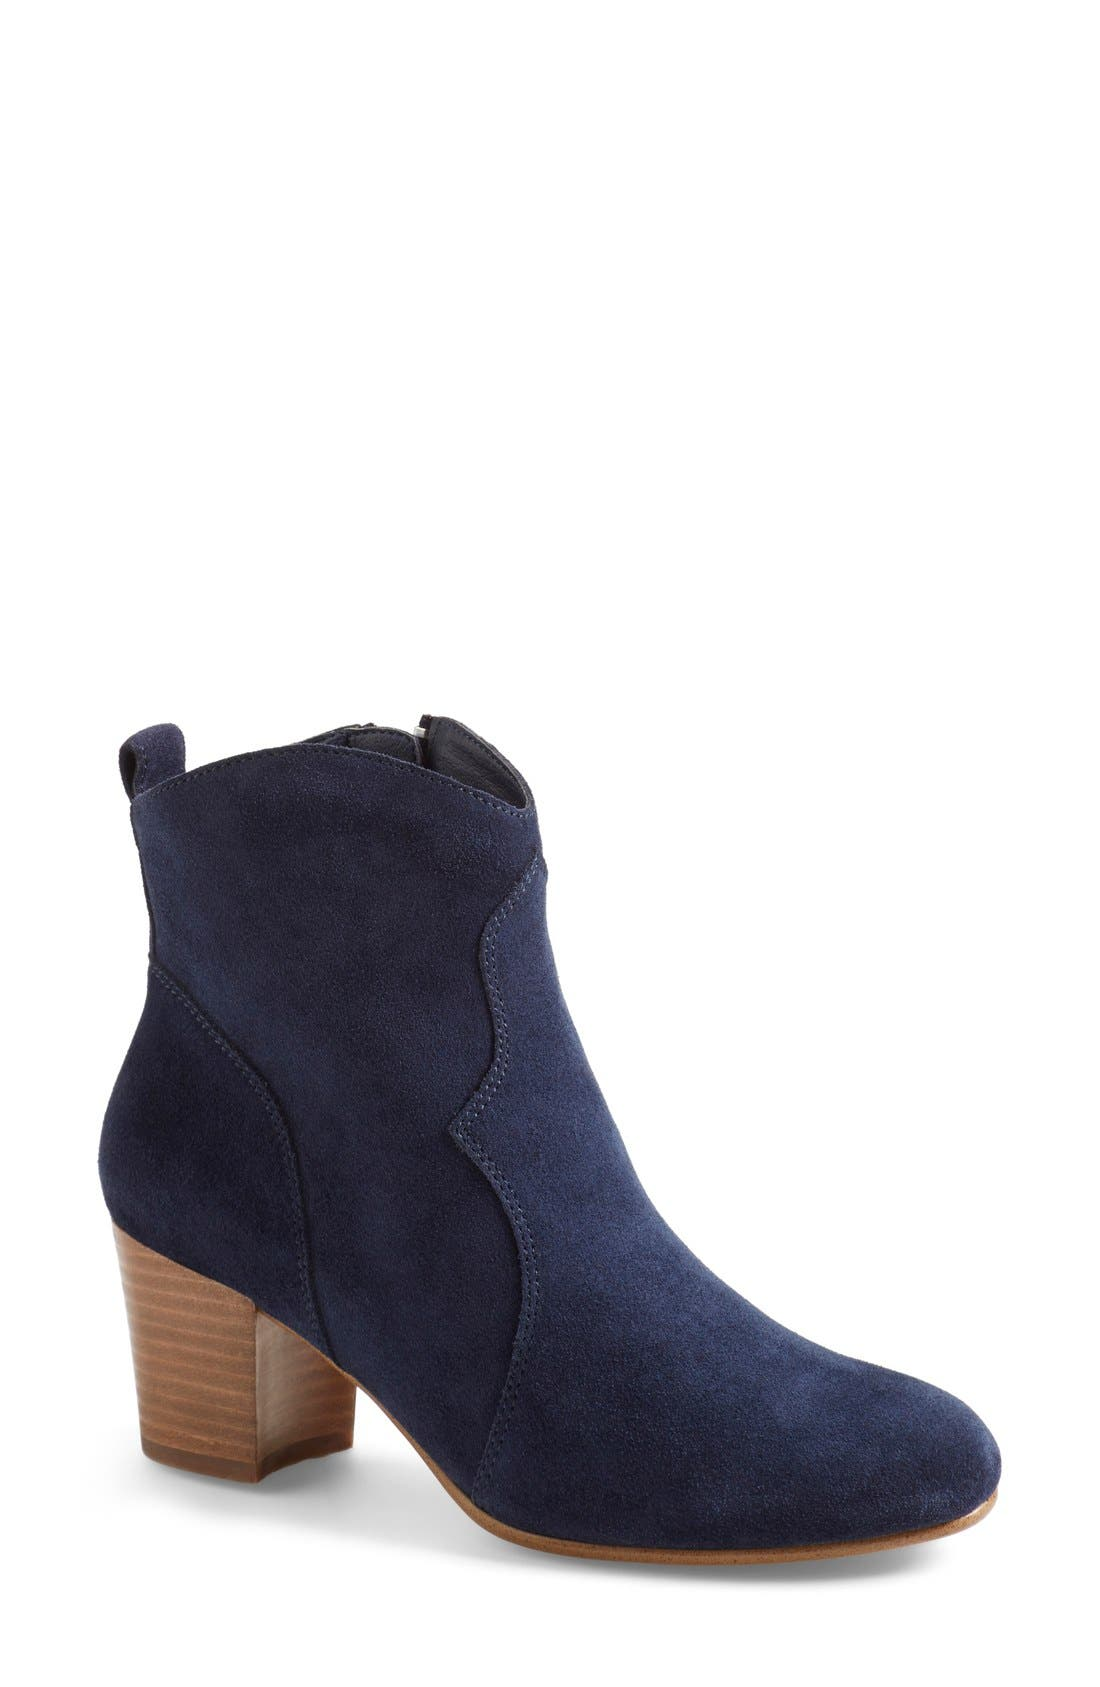 'Hipstr' Bootie,                             Main thumbnail 1, color,                             Navy Suede